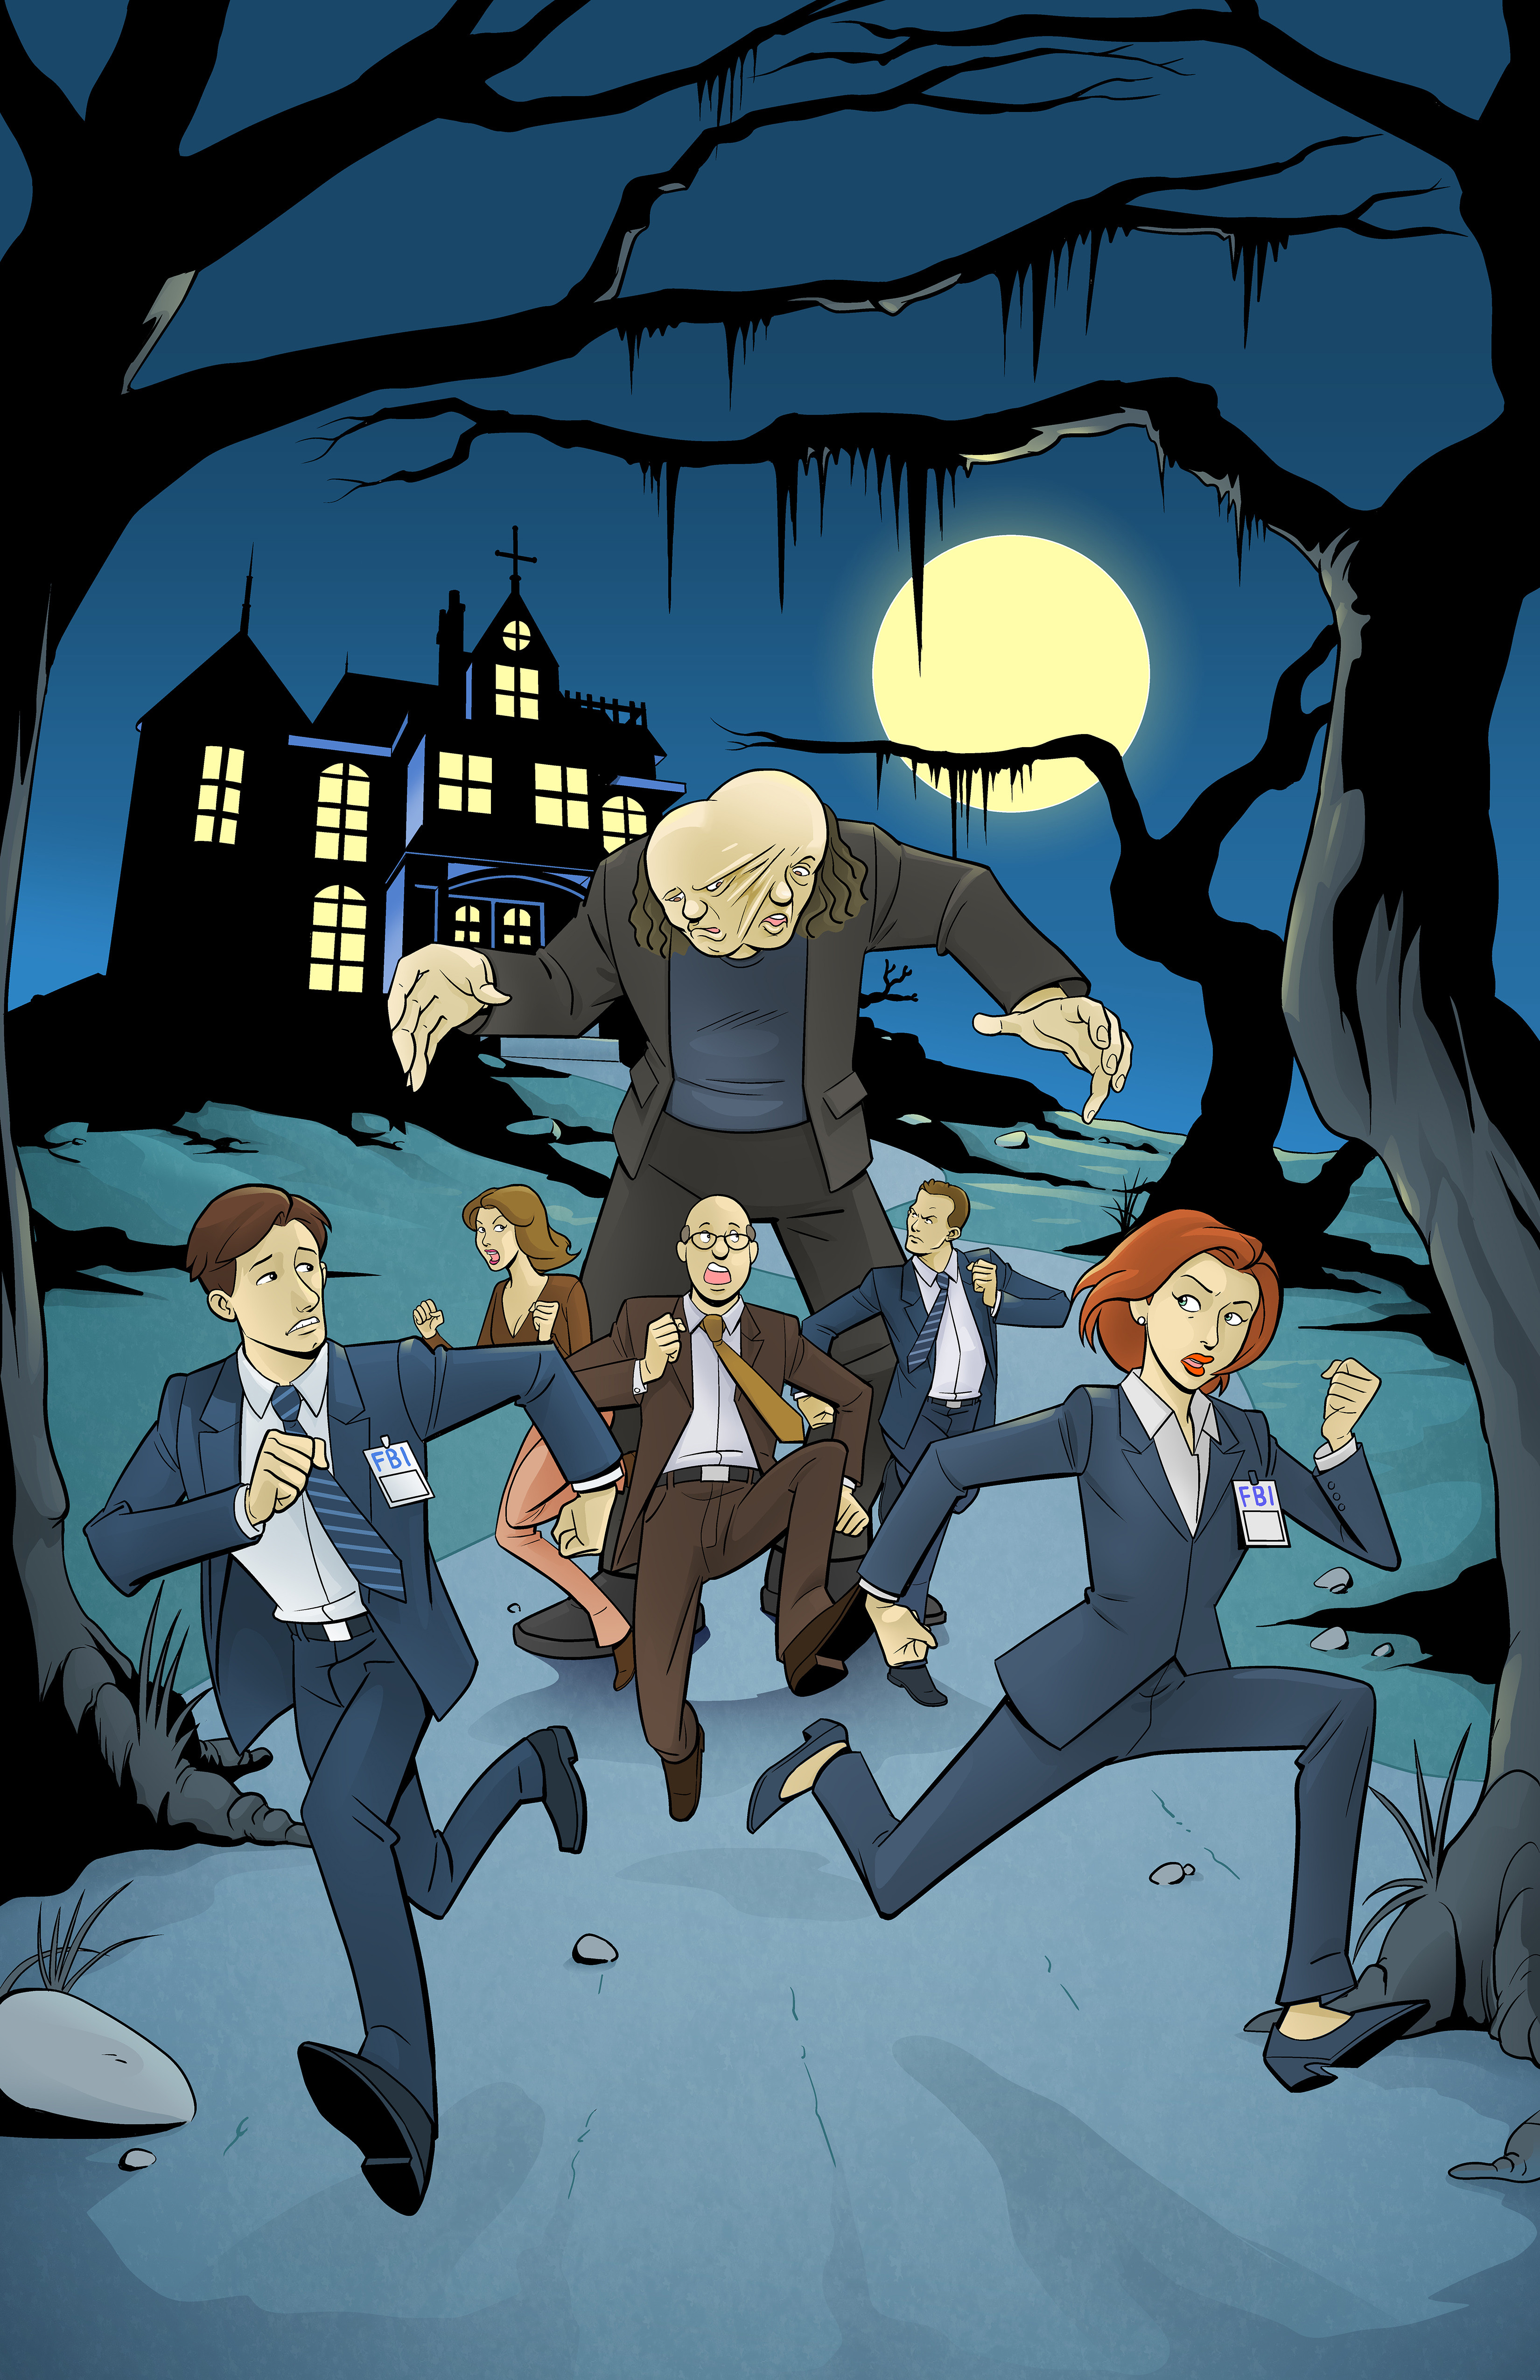 The X-Files Get Animated - Finished cover